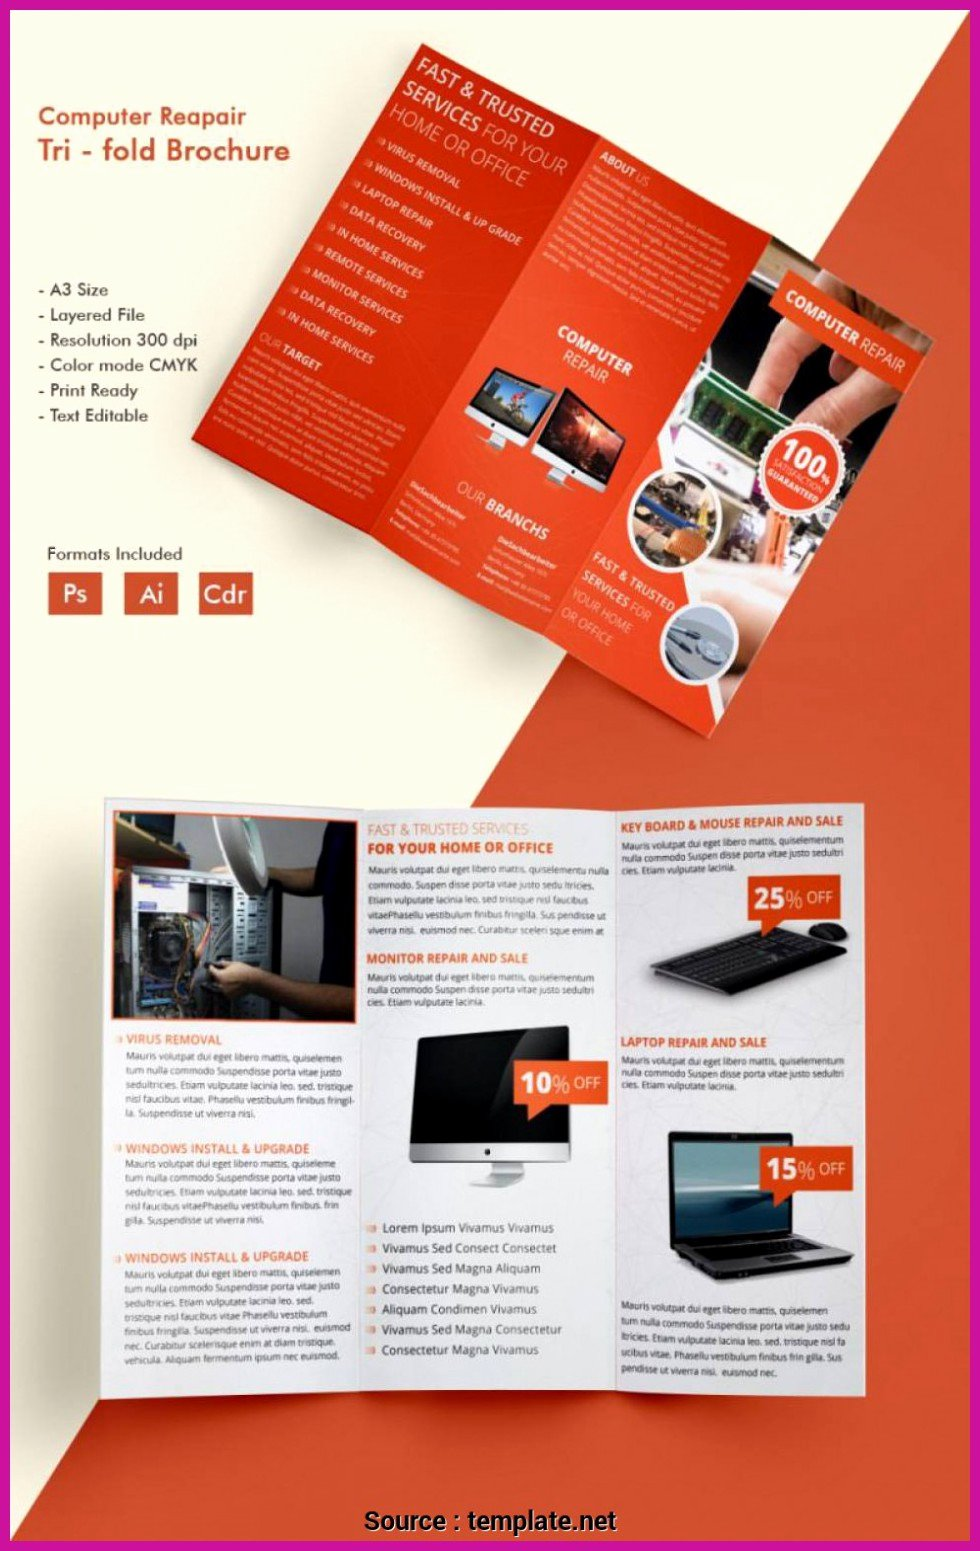 Computer Repair Flyer Templates Fresh top Entries Puter Repair Business Flyer Templates